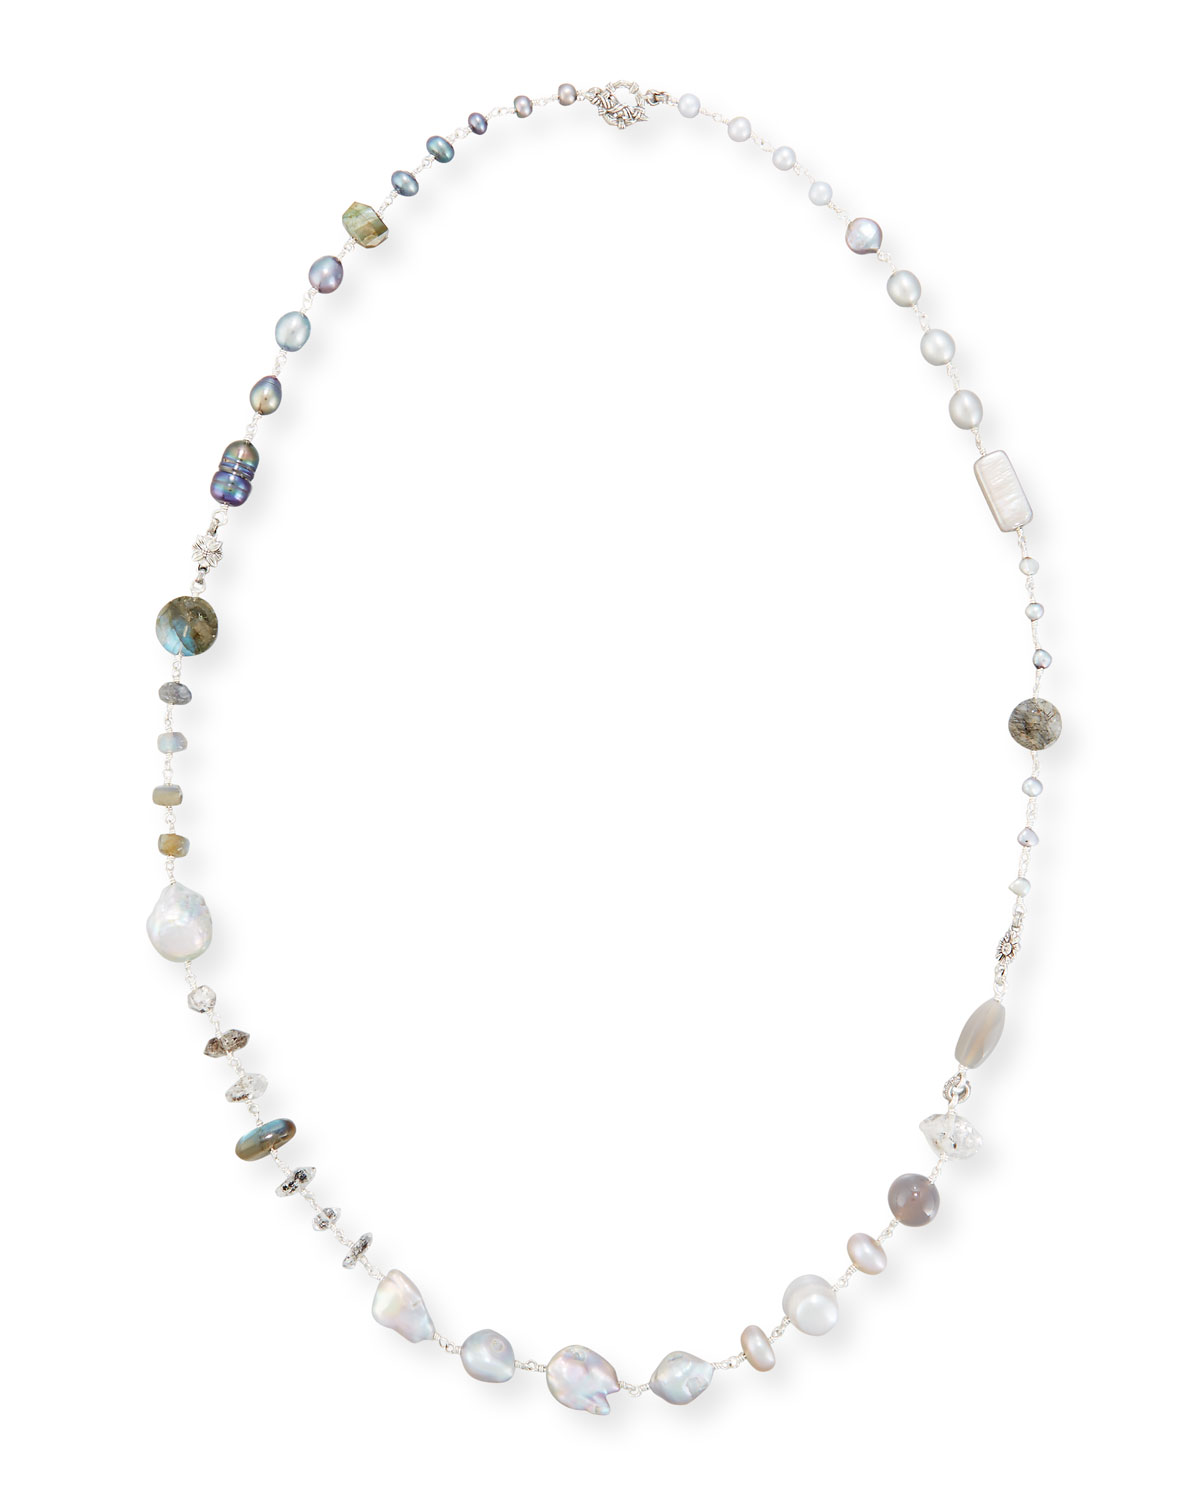 Mixed Bead & Pearl Necklace, 34